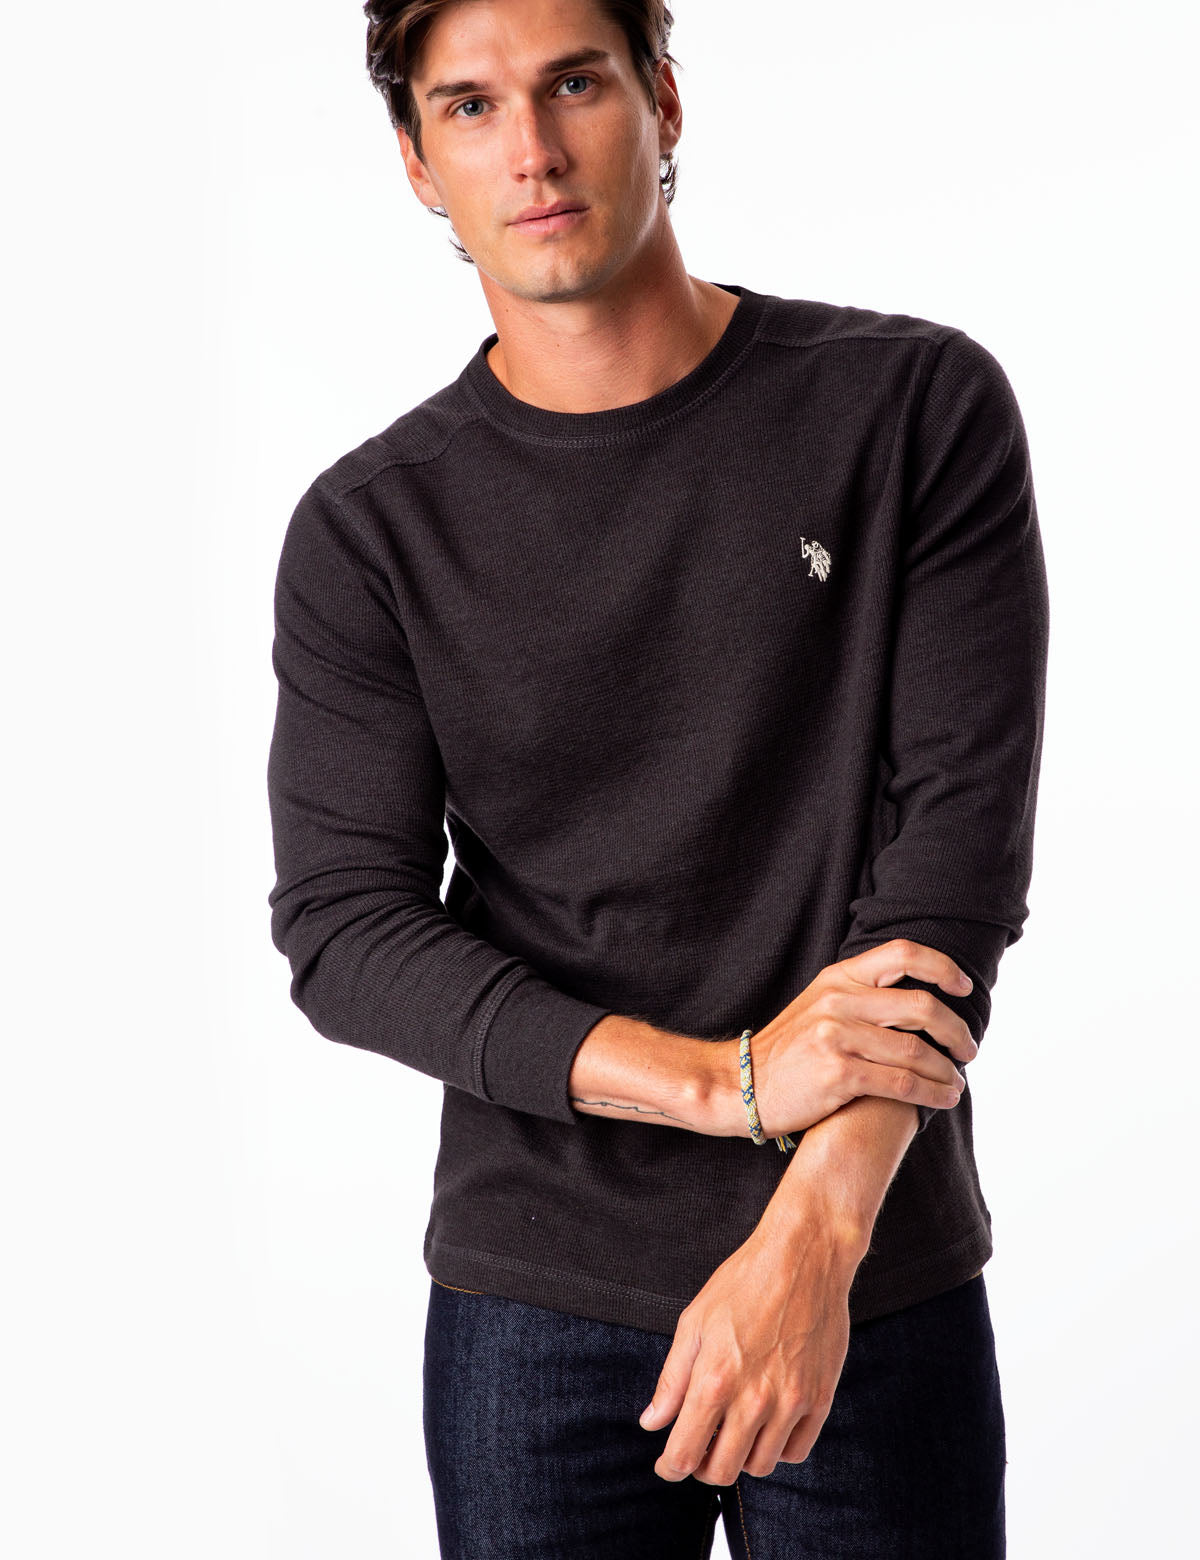 THERMAL CREW NECK SHIRT - U.S. Polo Assn.